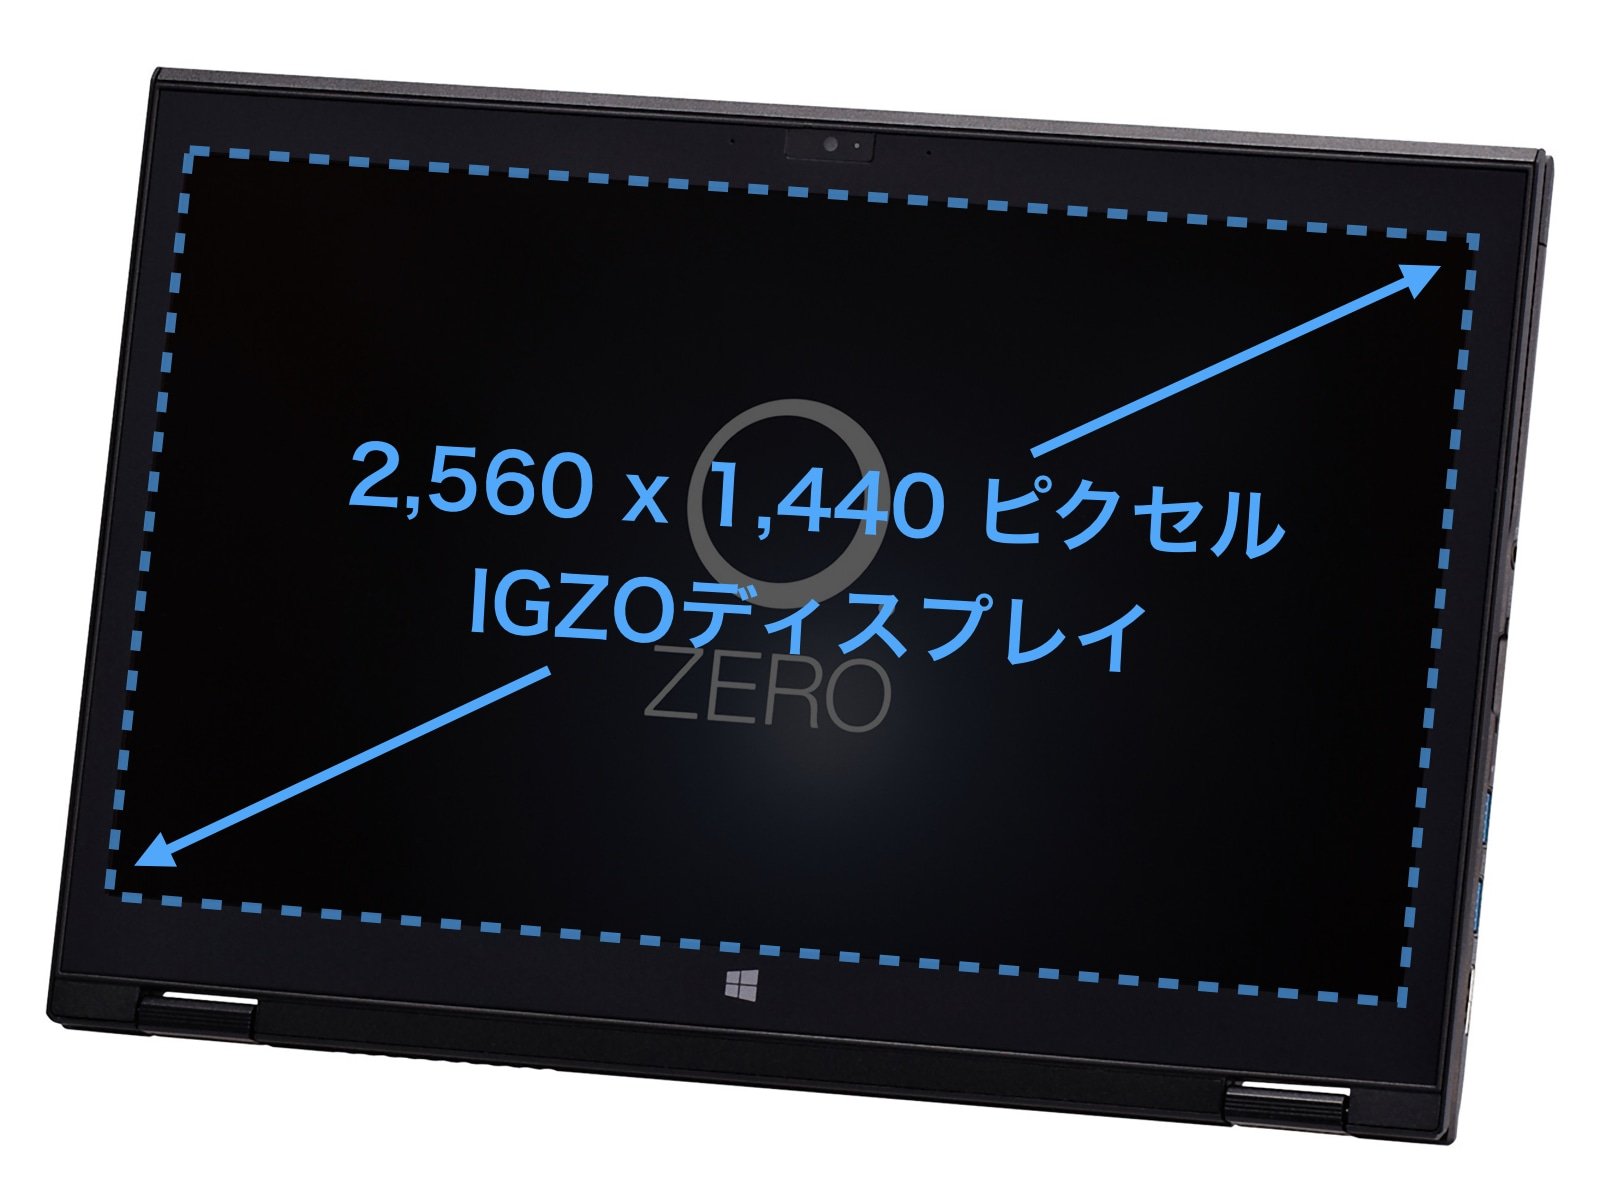 nec-lavie-hybrid-zero-hz750-display.001